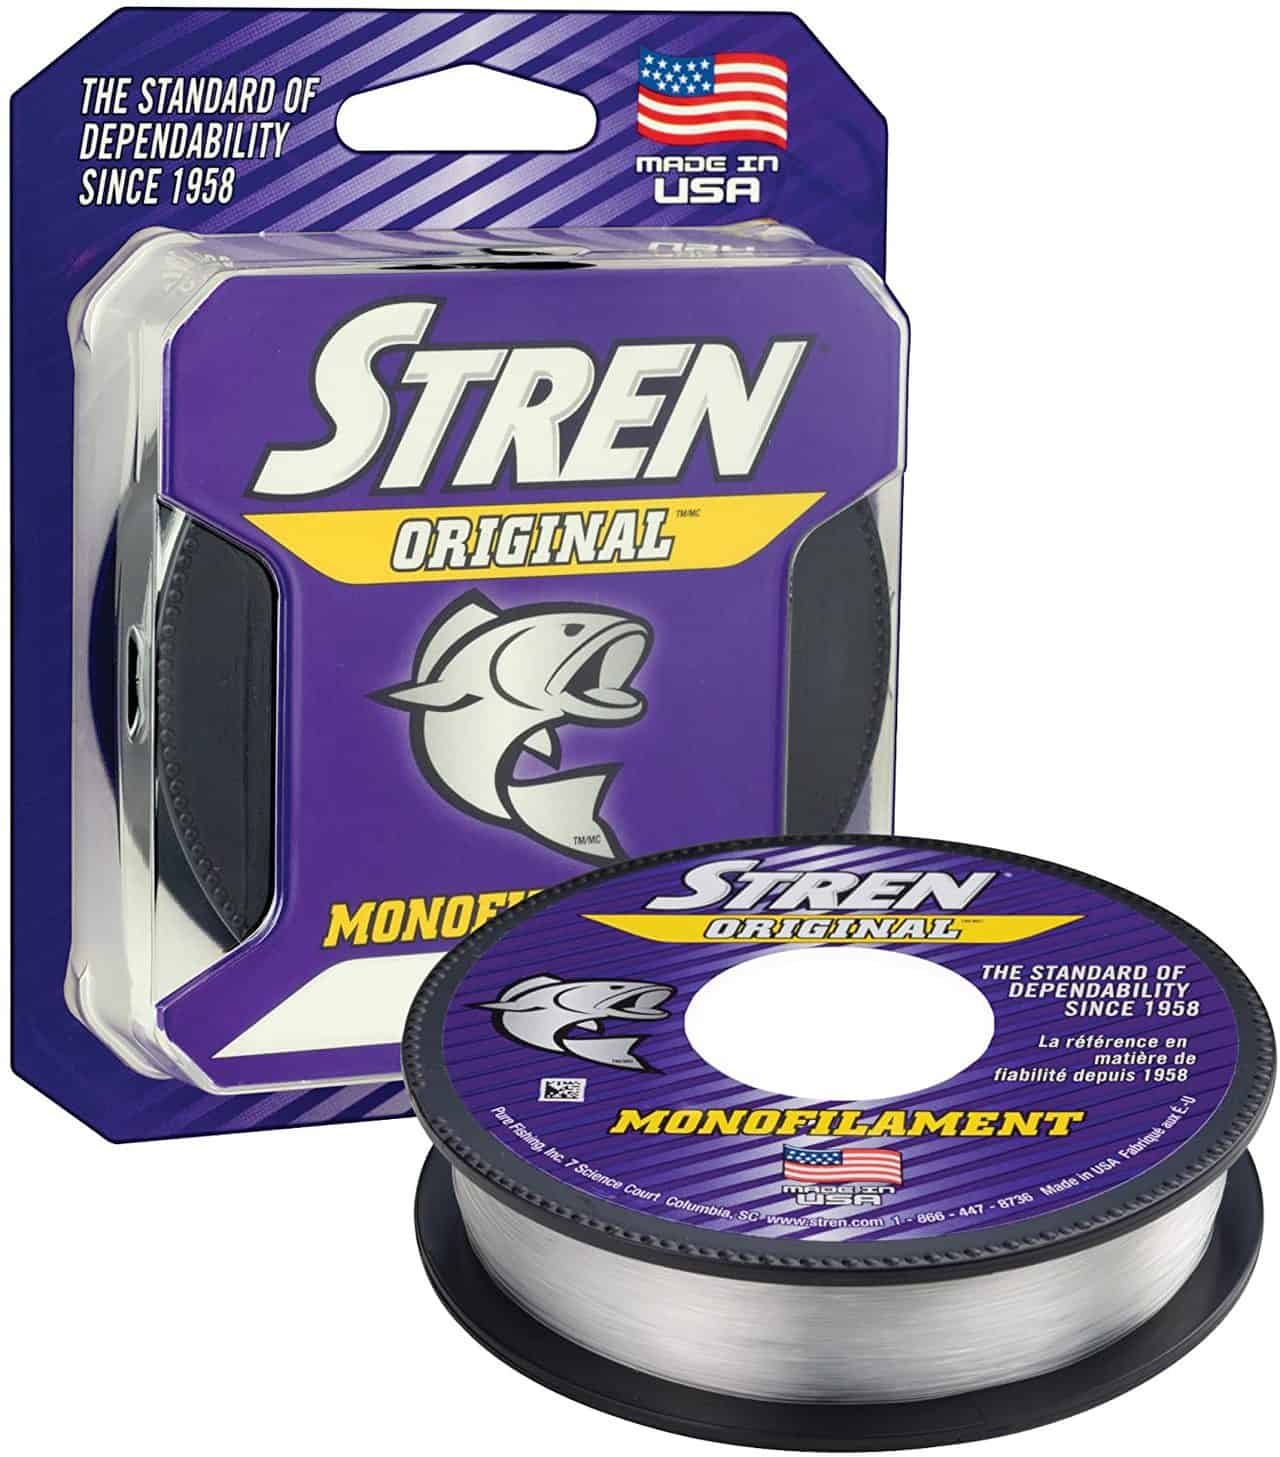 Original Monofilament Fishing Line by Stren